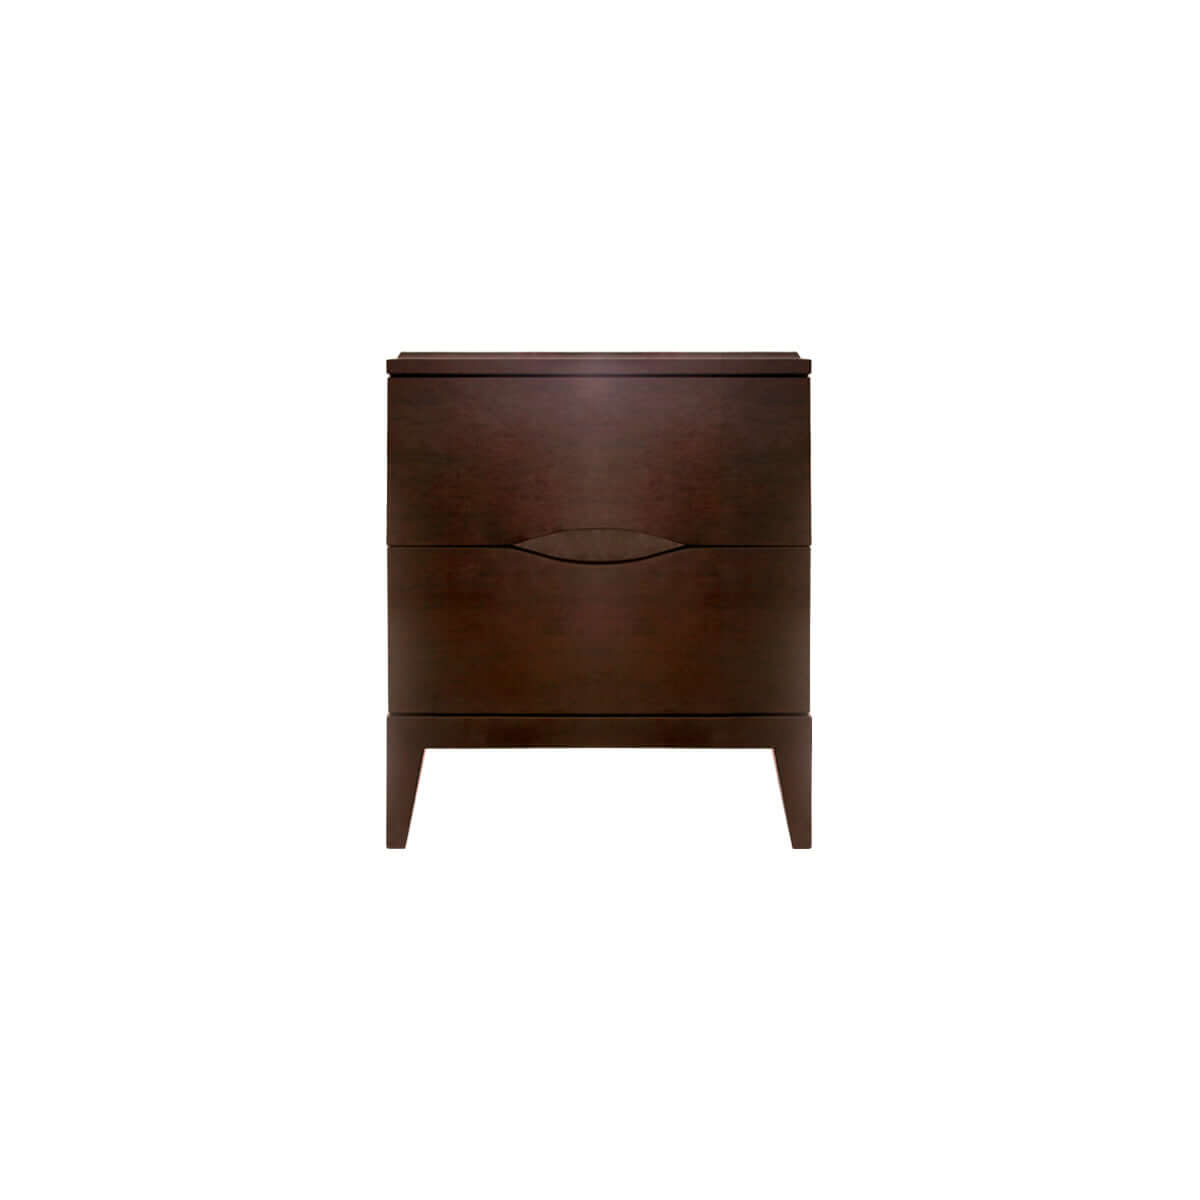 furniture jakarta bali indonesia two drawer bedside table meja dekoruma